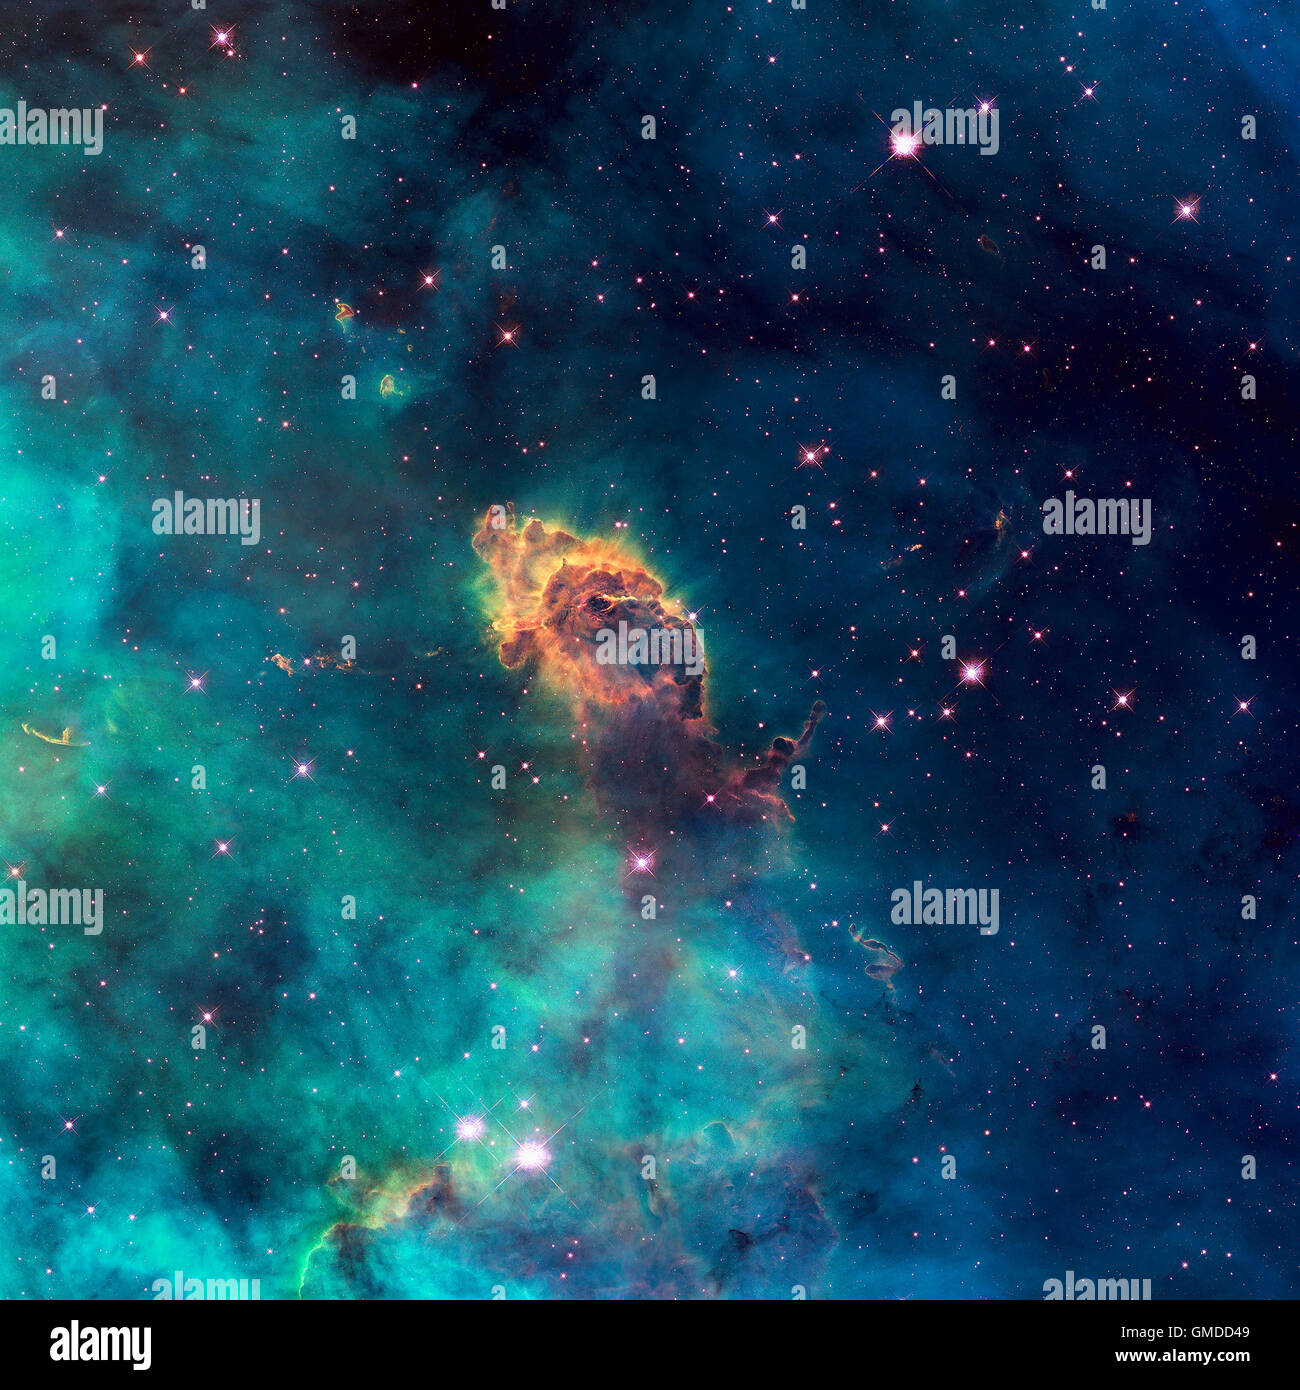 Image of a stellar jet in the Carina Nebula, imaged by Hubble's WFC3 and UVIS detector. Universe filled with - Stock Image